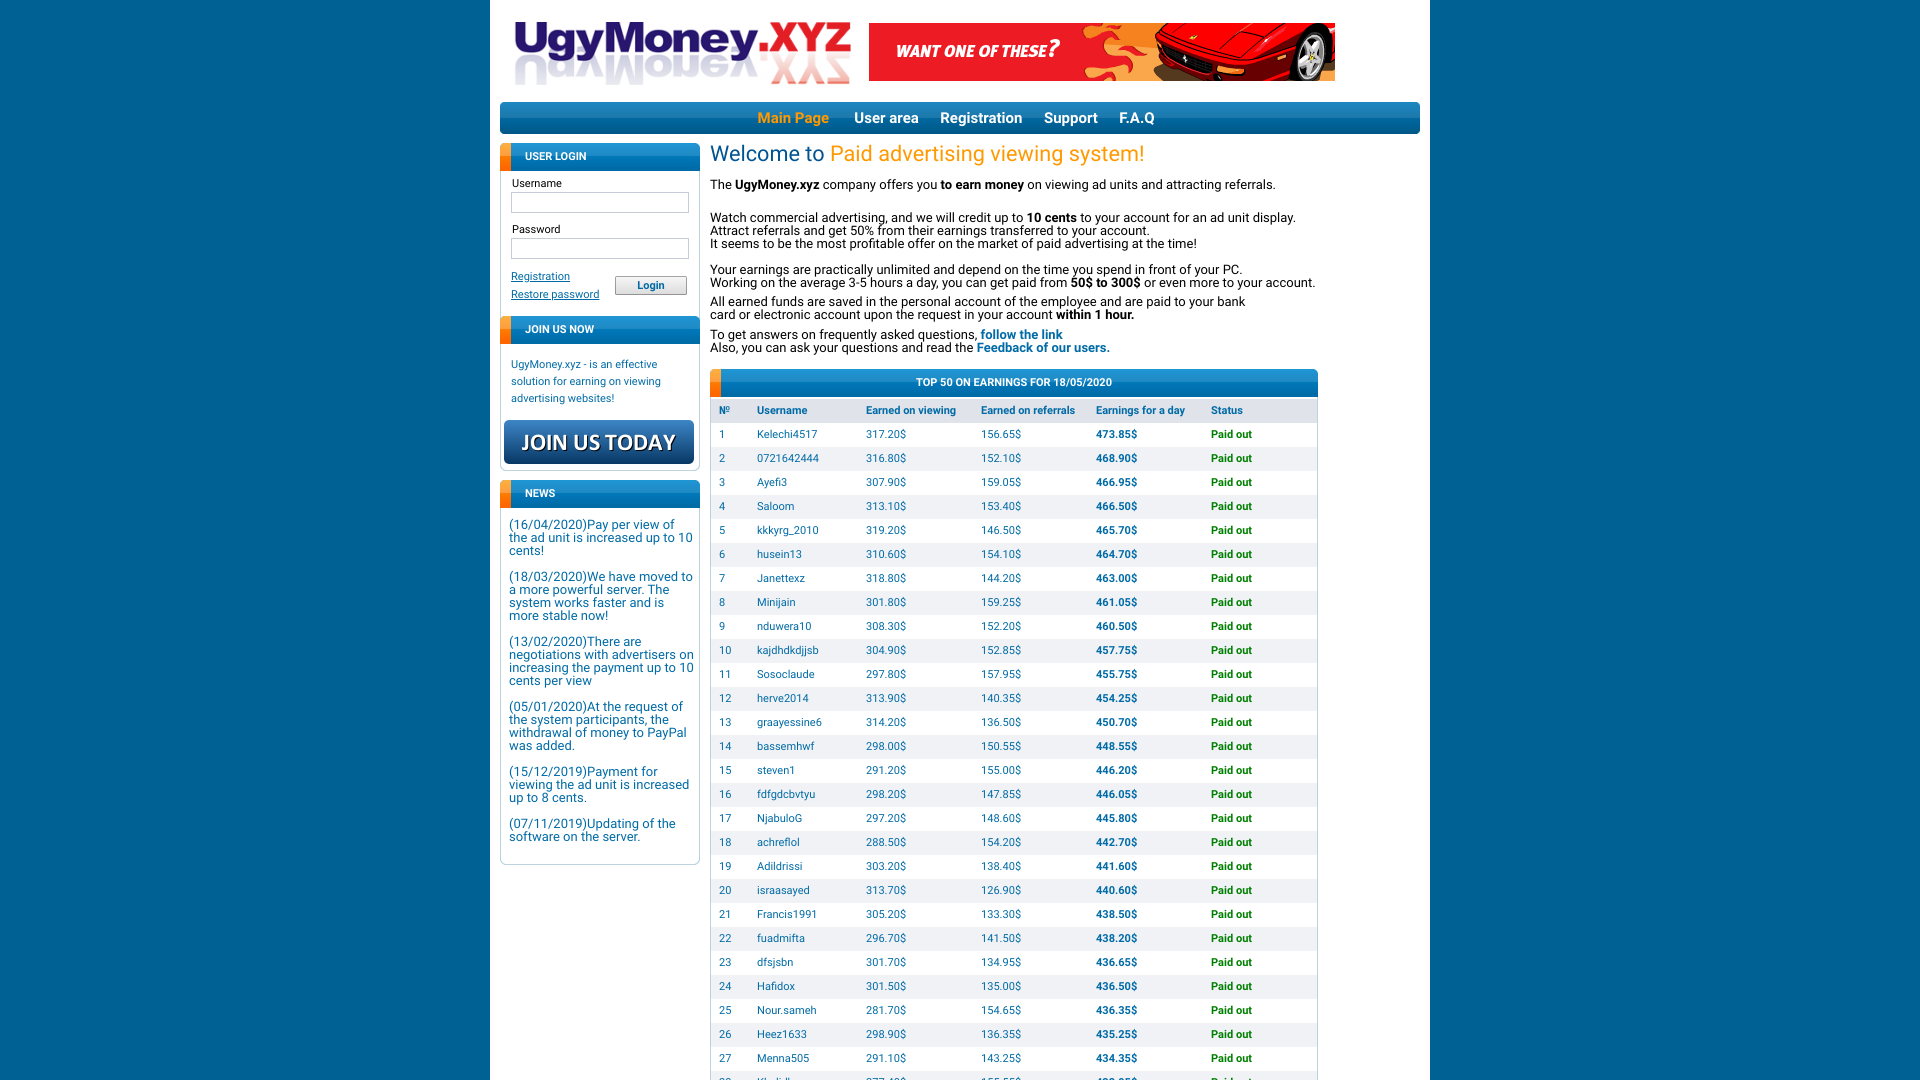 Ugymoney is a Fraudulent Work-From-Home Website